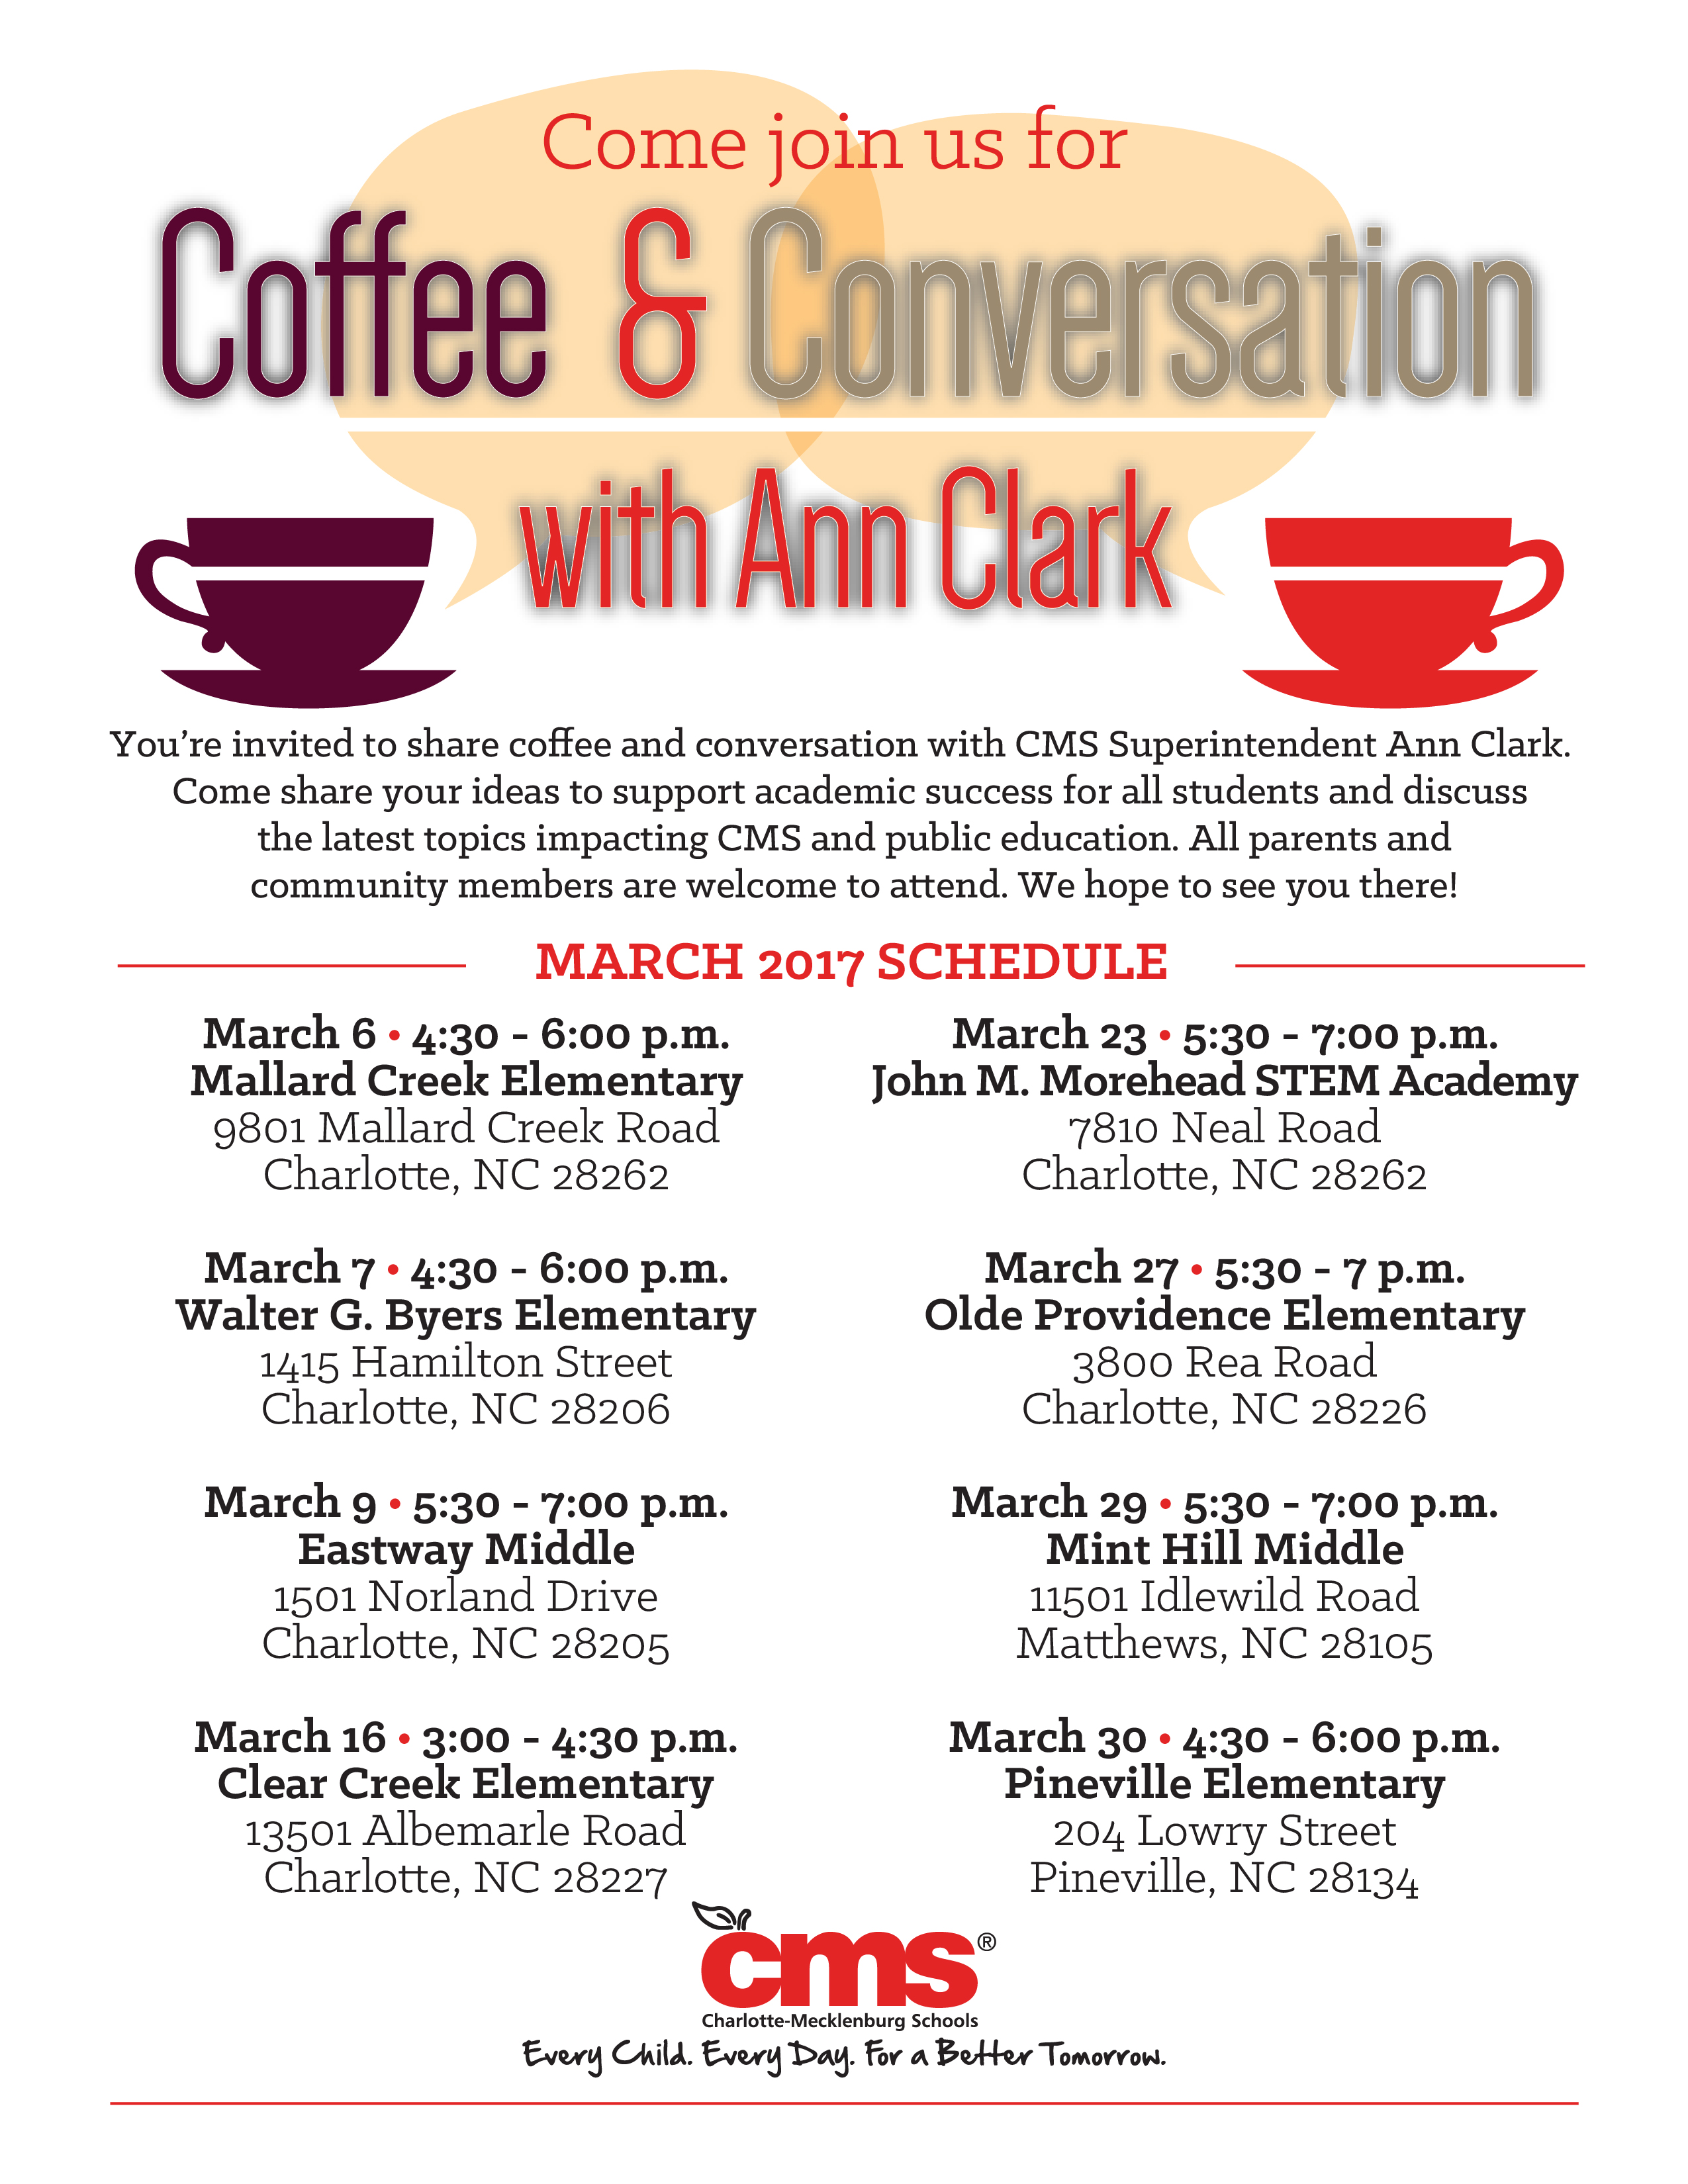 CMS_2017Coffee with Ann_MarchE-Flier_revised2.27.17.jpg